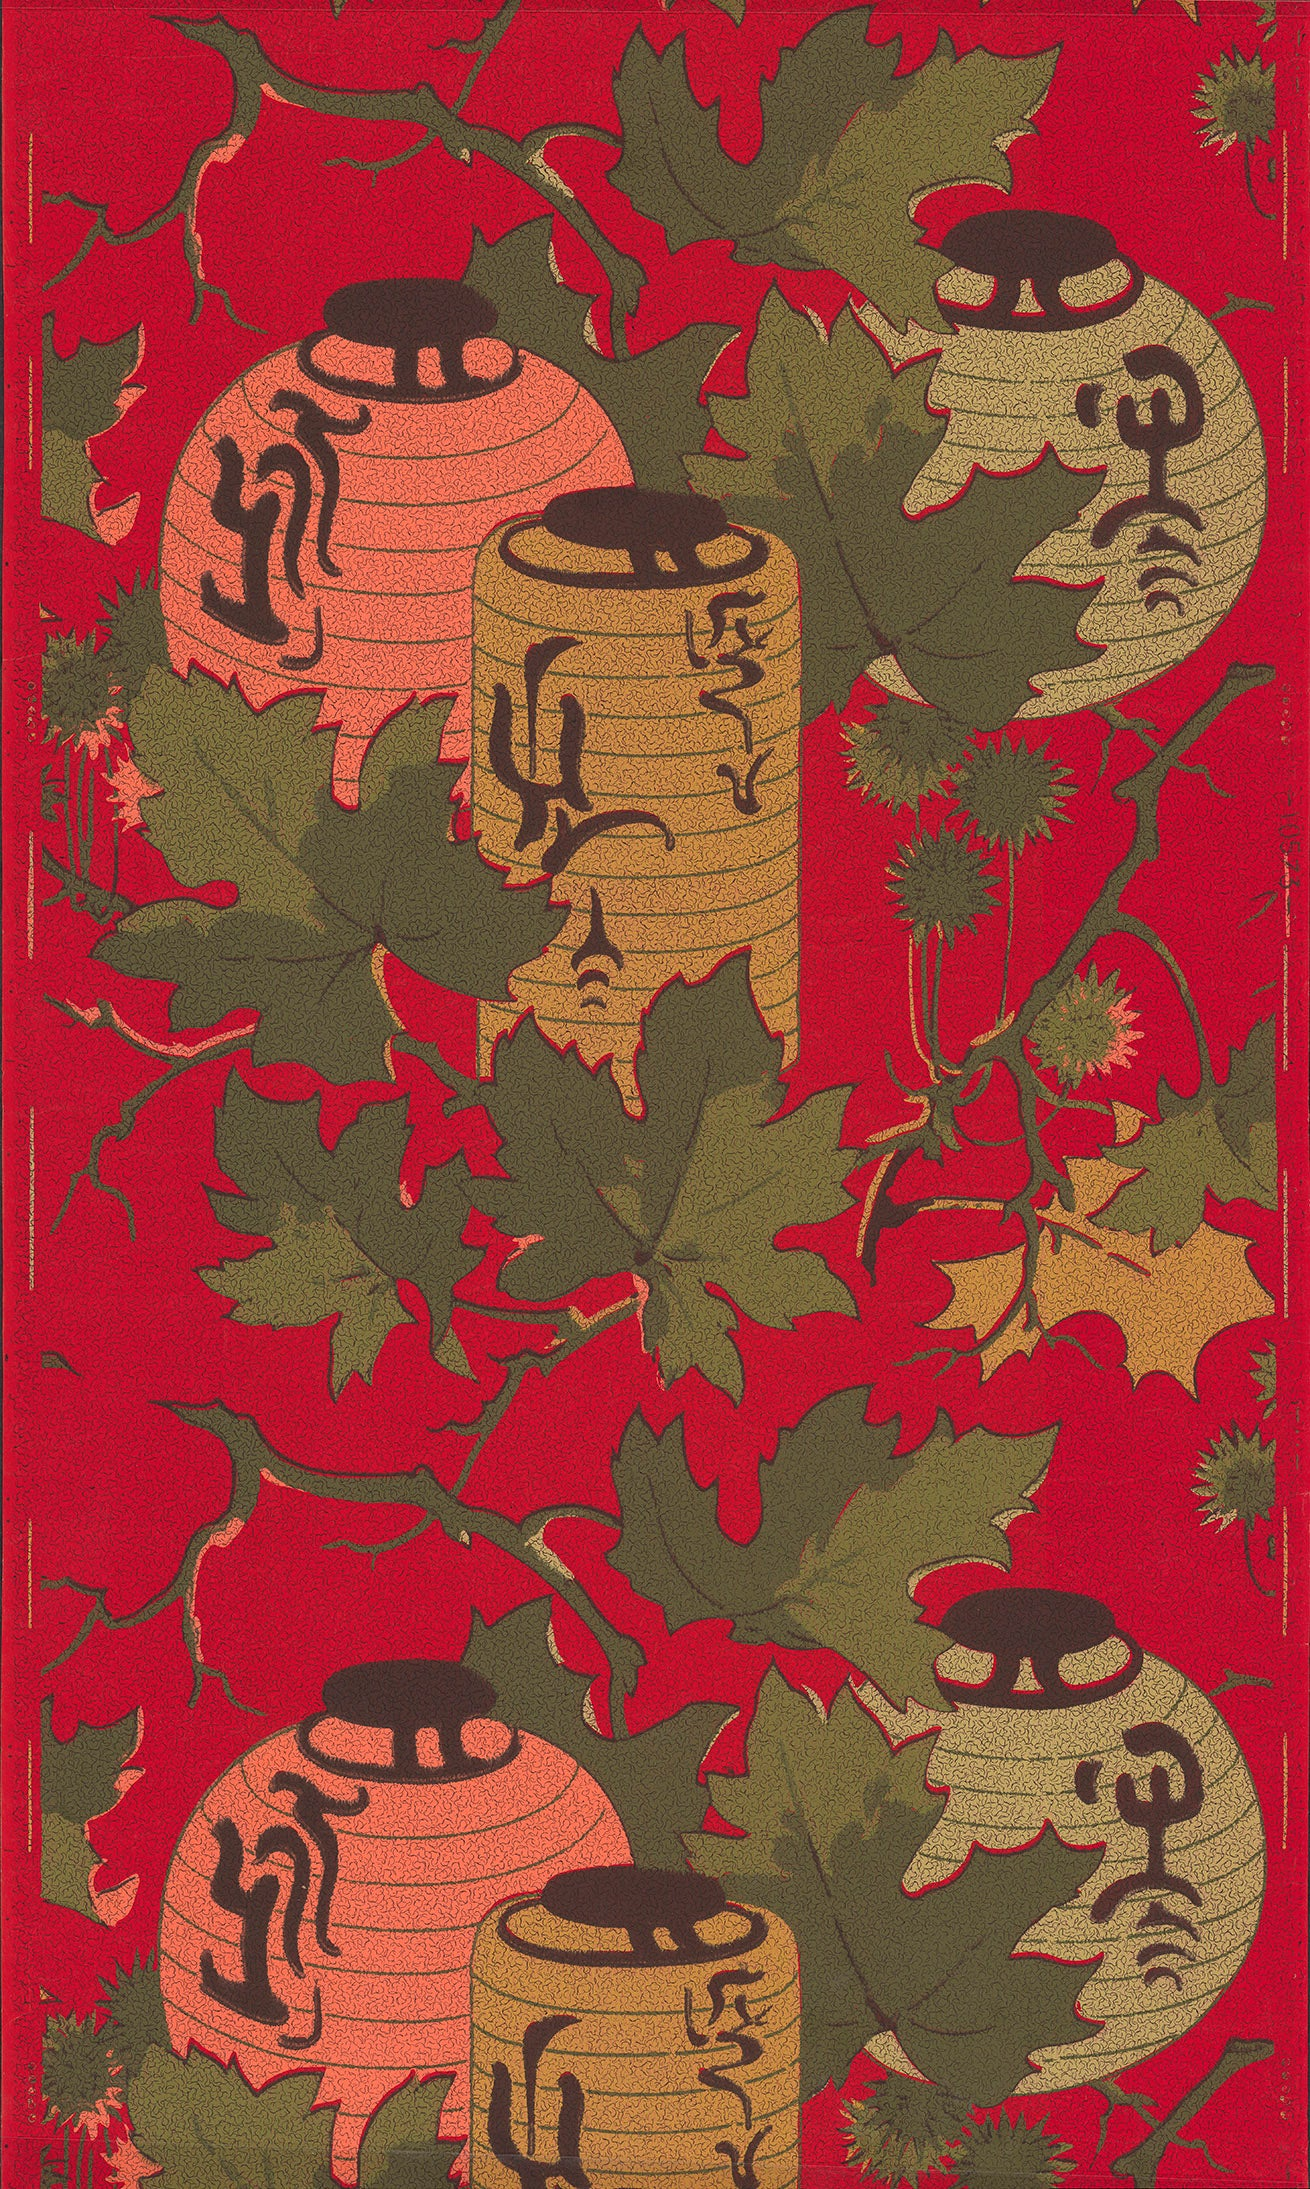 Japanese Lanterns in Branches on Red Ground - Antique Wallpaper Remnant